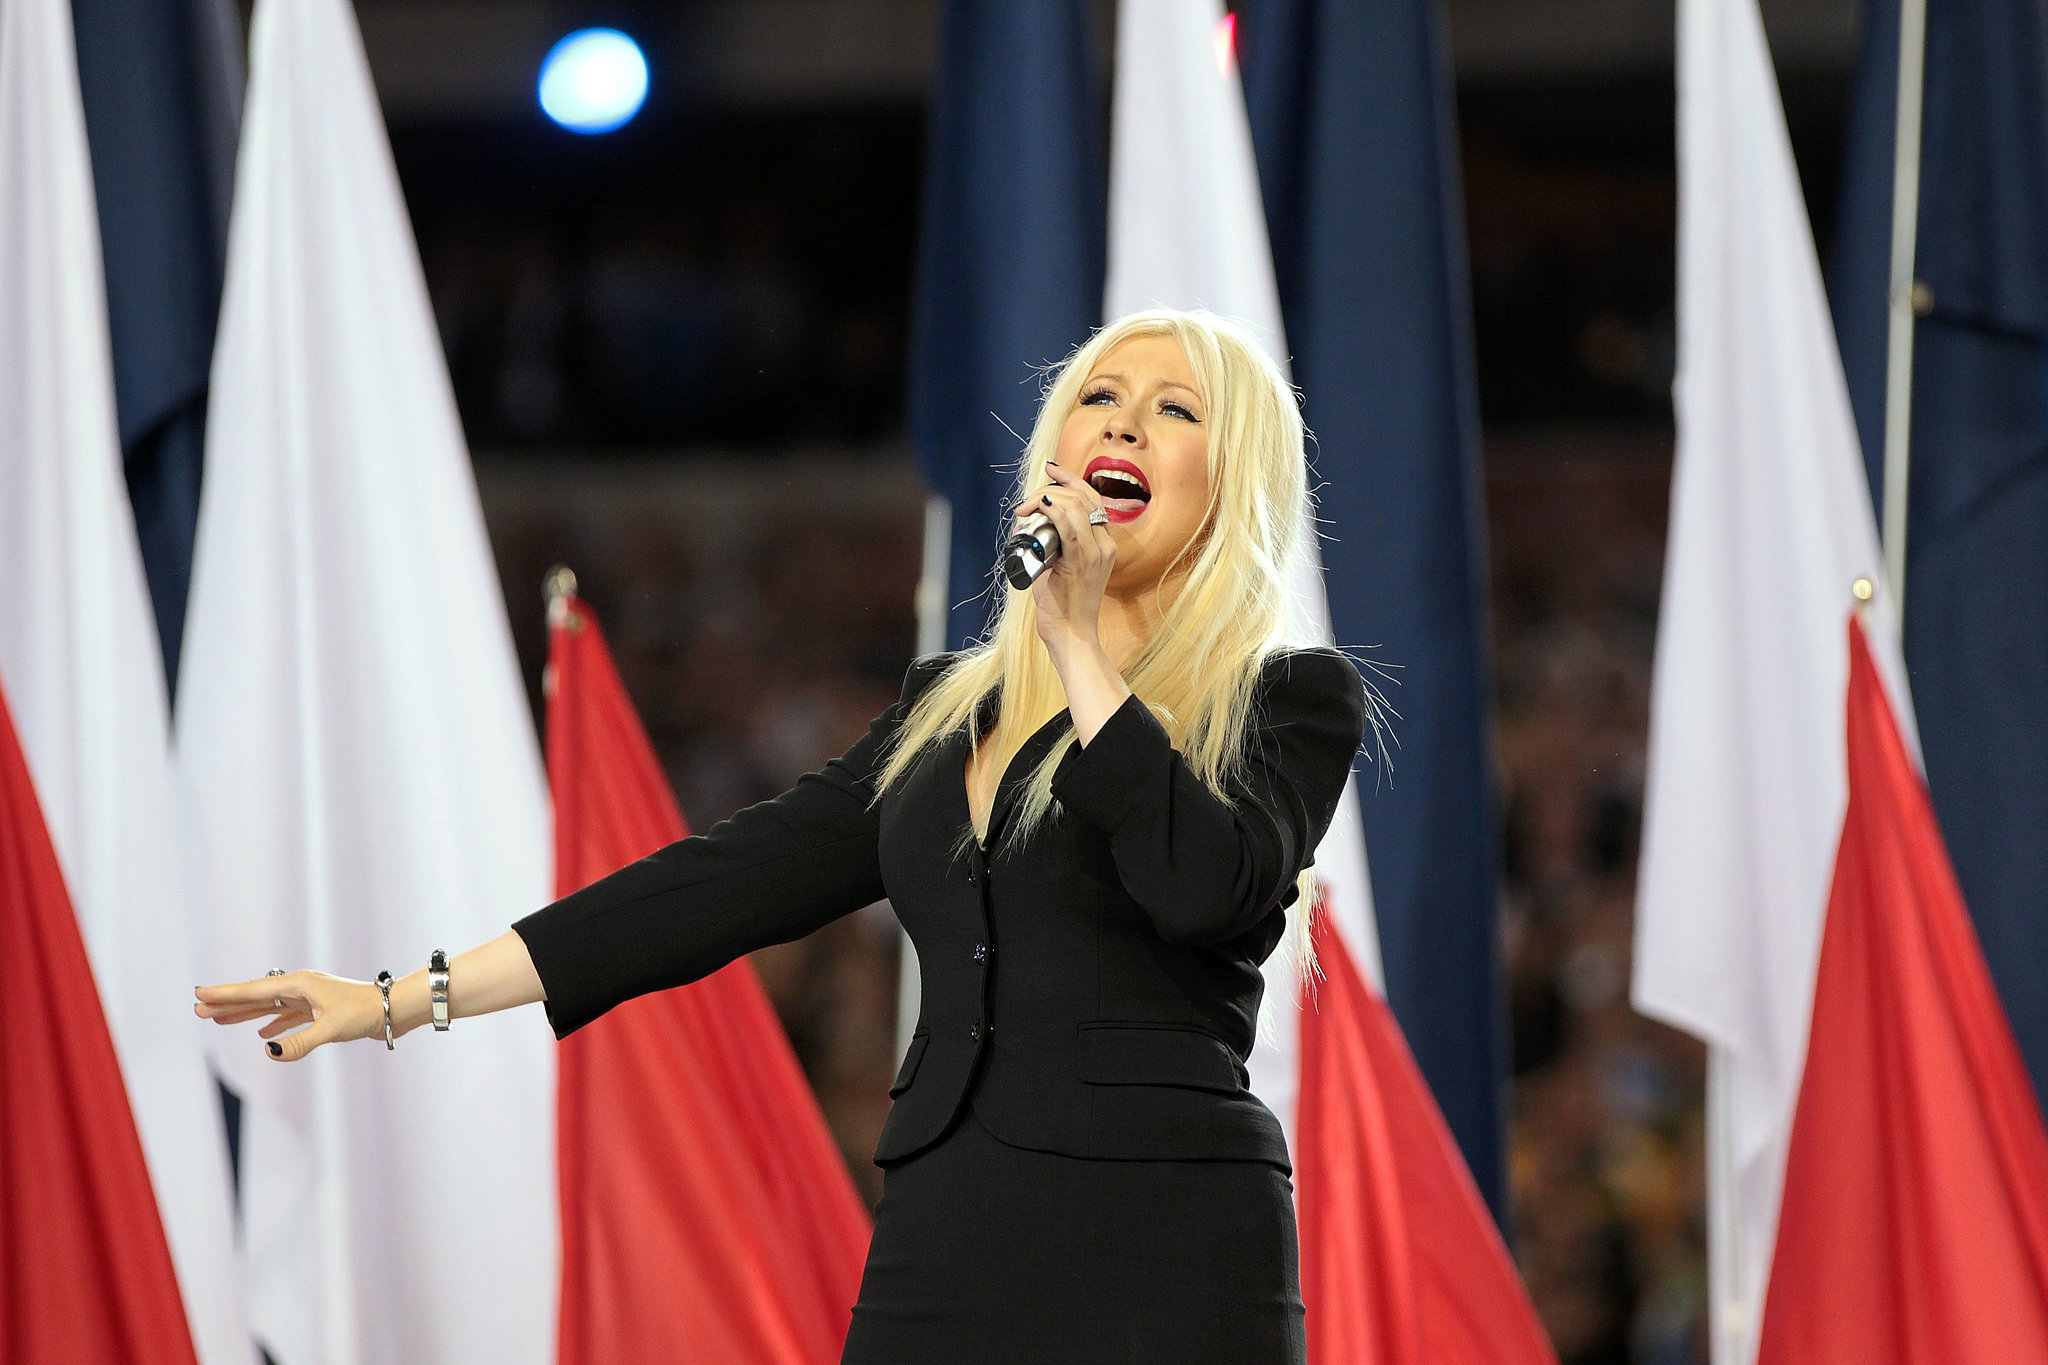 Christina Aguilera's controversial lyric flub during the 2011 Super Bowl national anthem at Cowboys stadium was unforgettable.